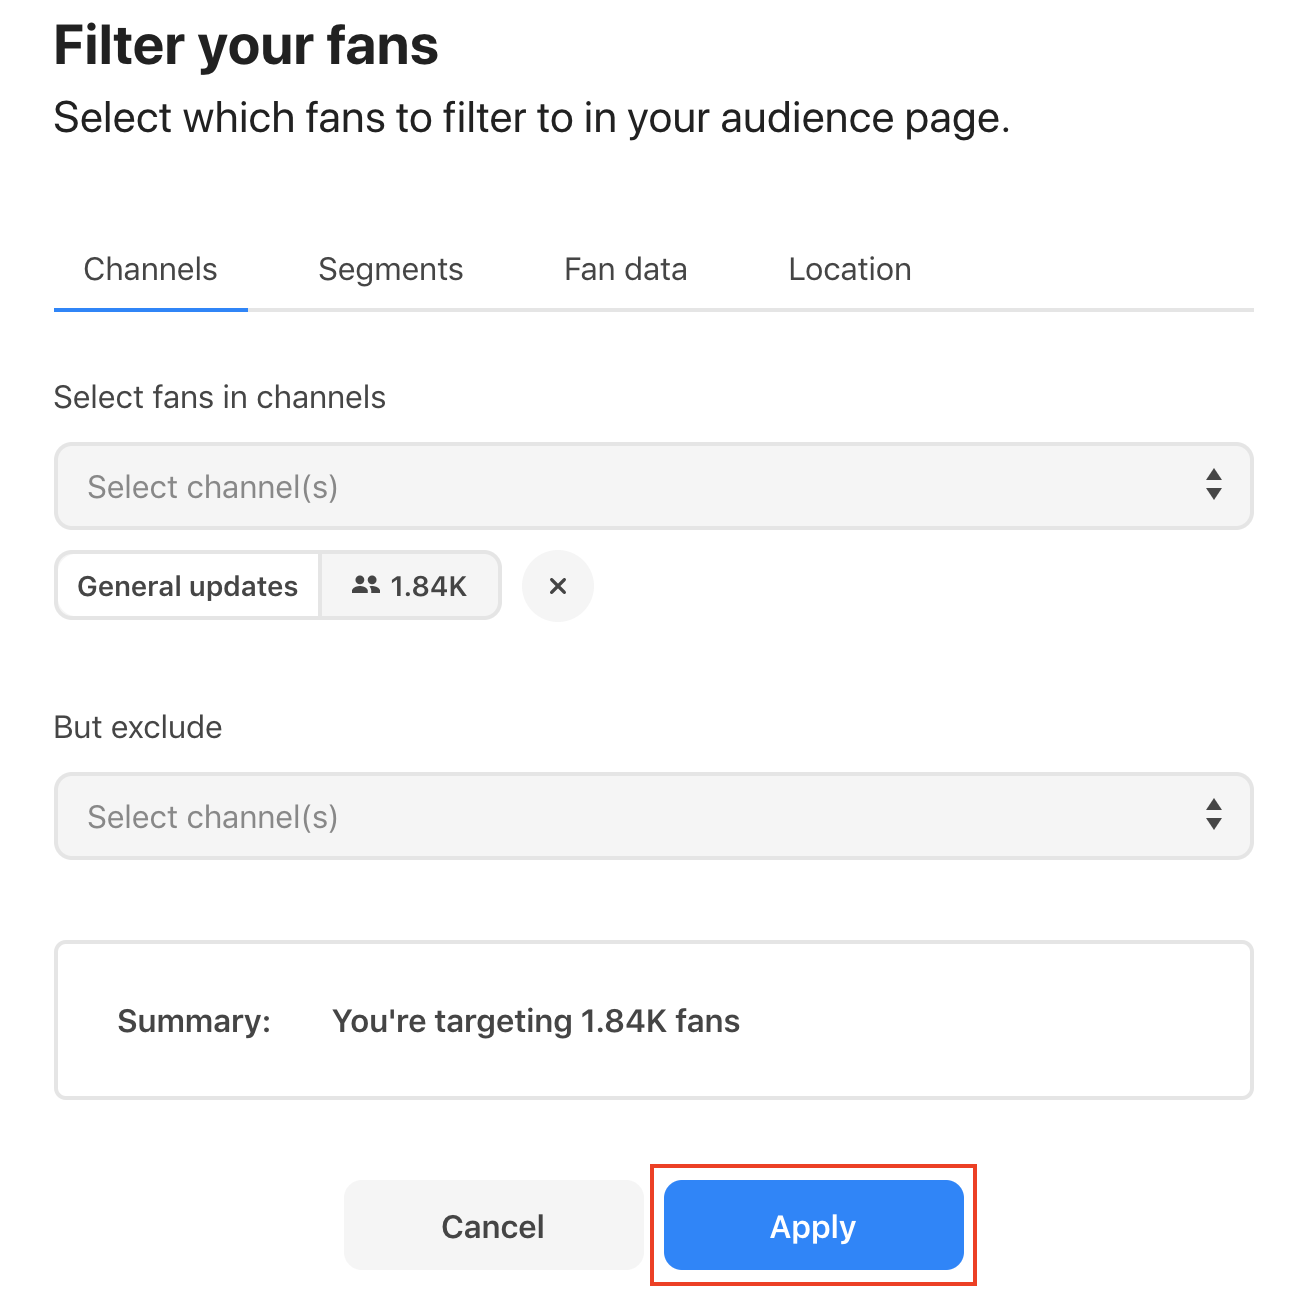 Applying filters to your audience